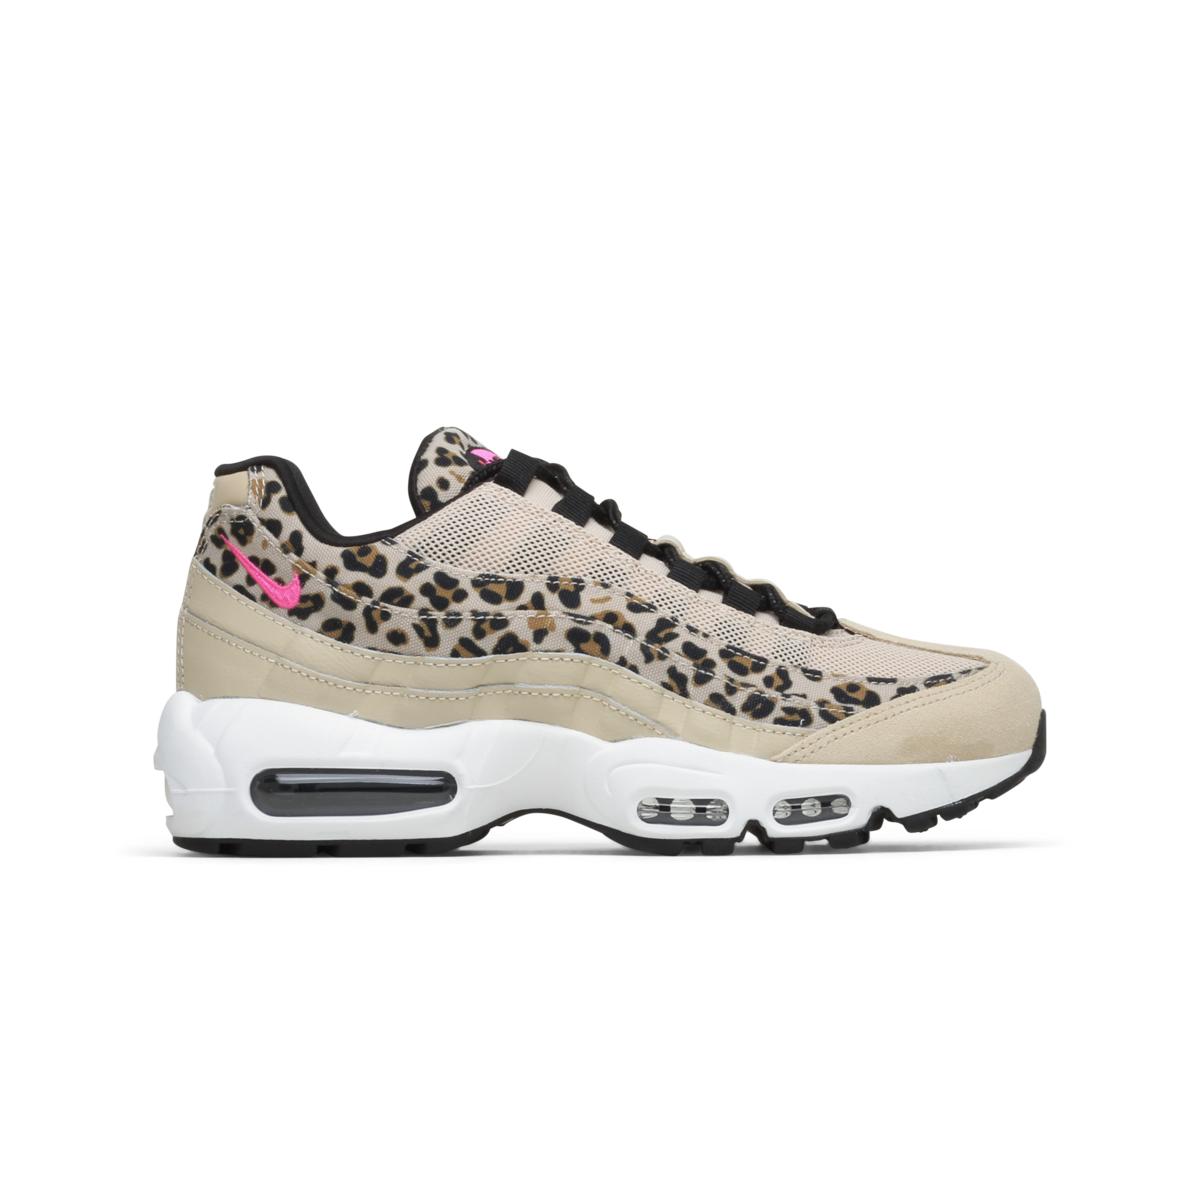 huge selection of 0ab3e 48844 Air Max 95 Premium - Wmns